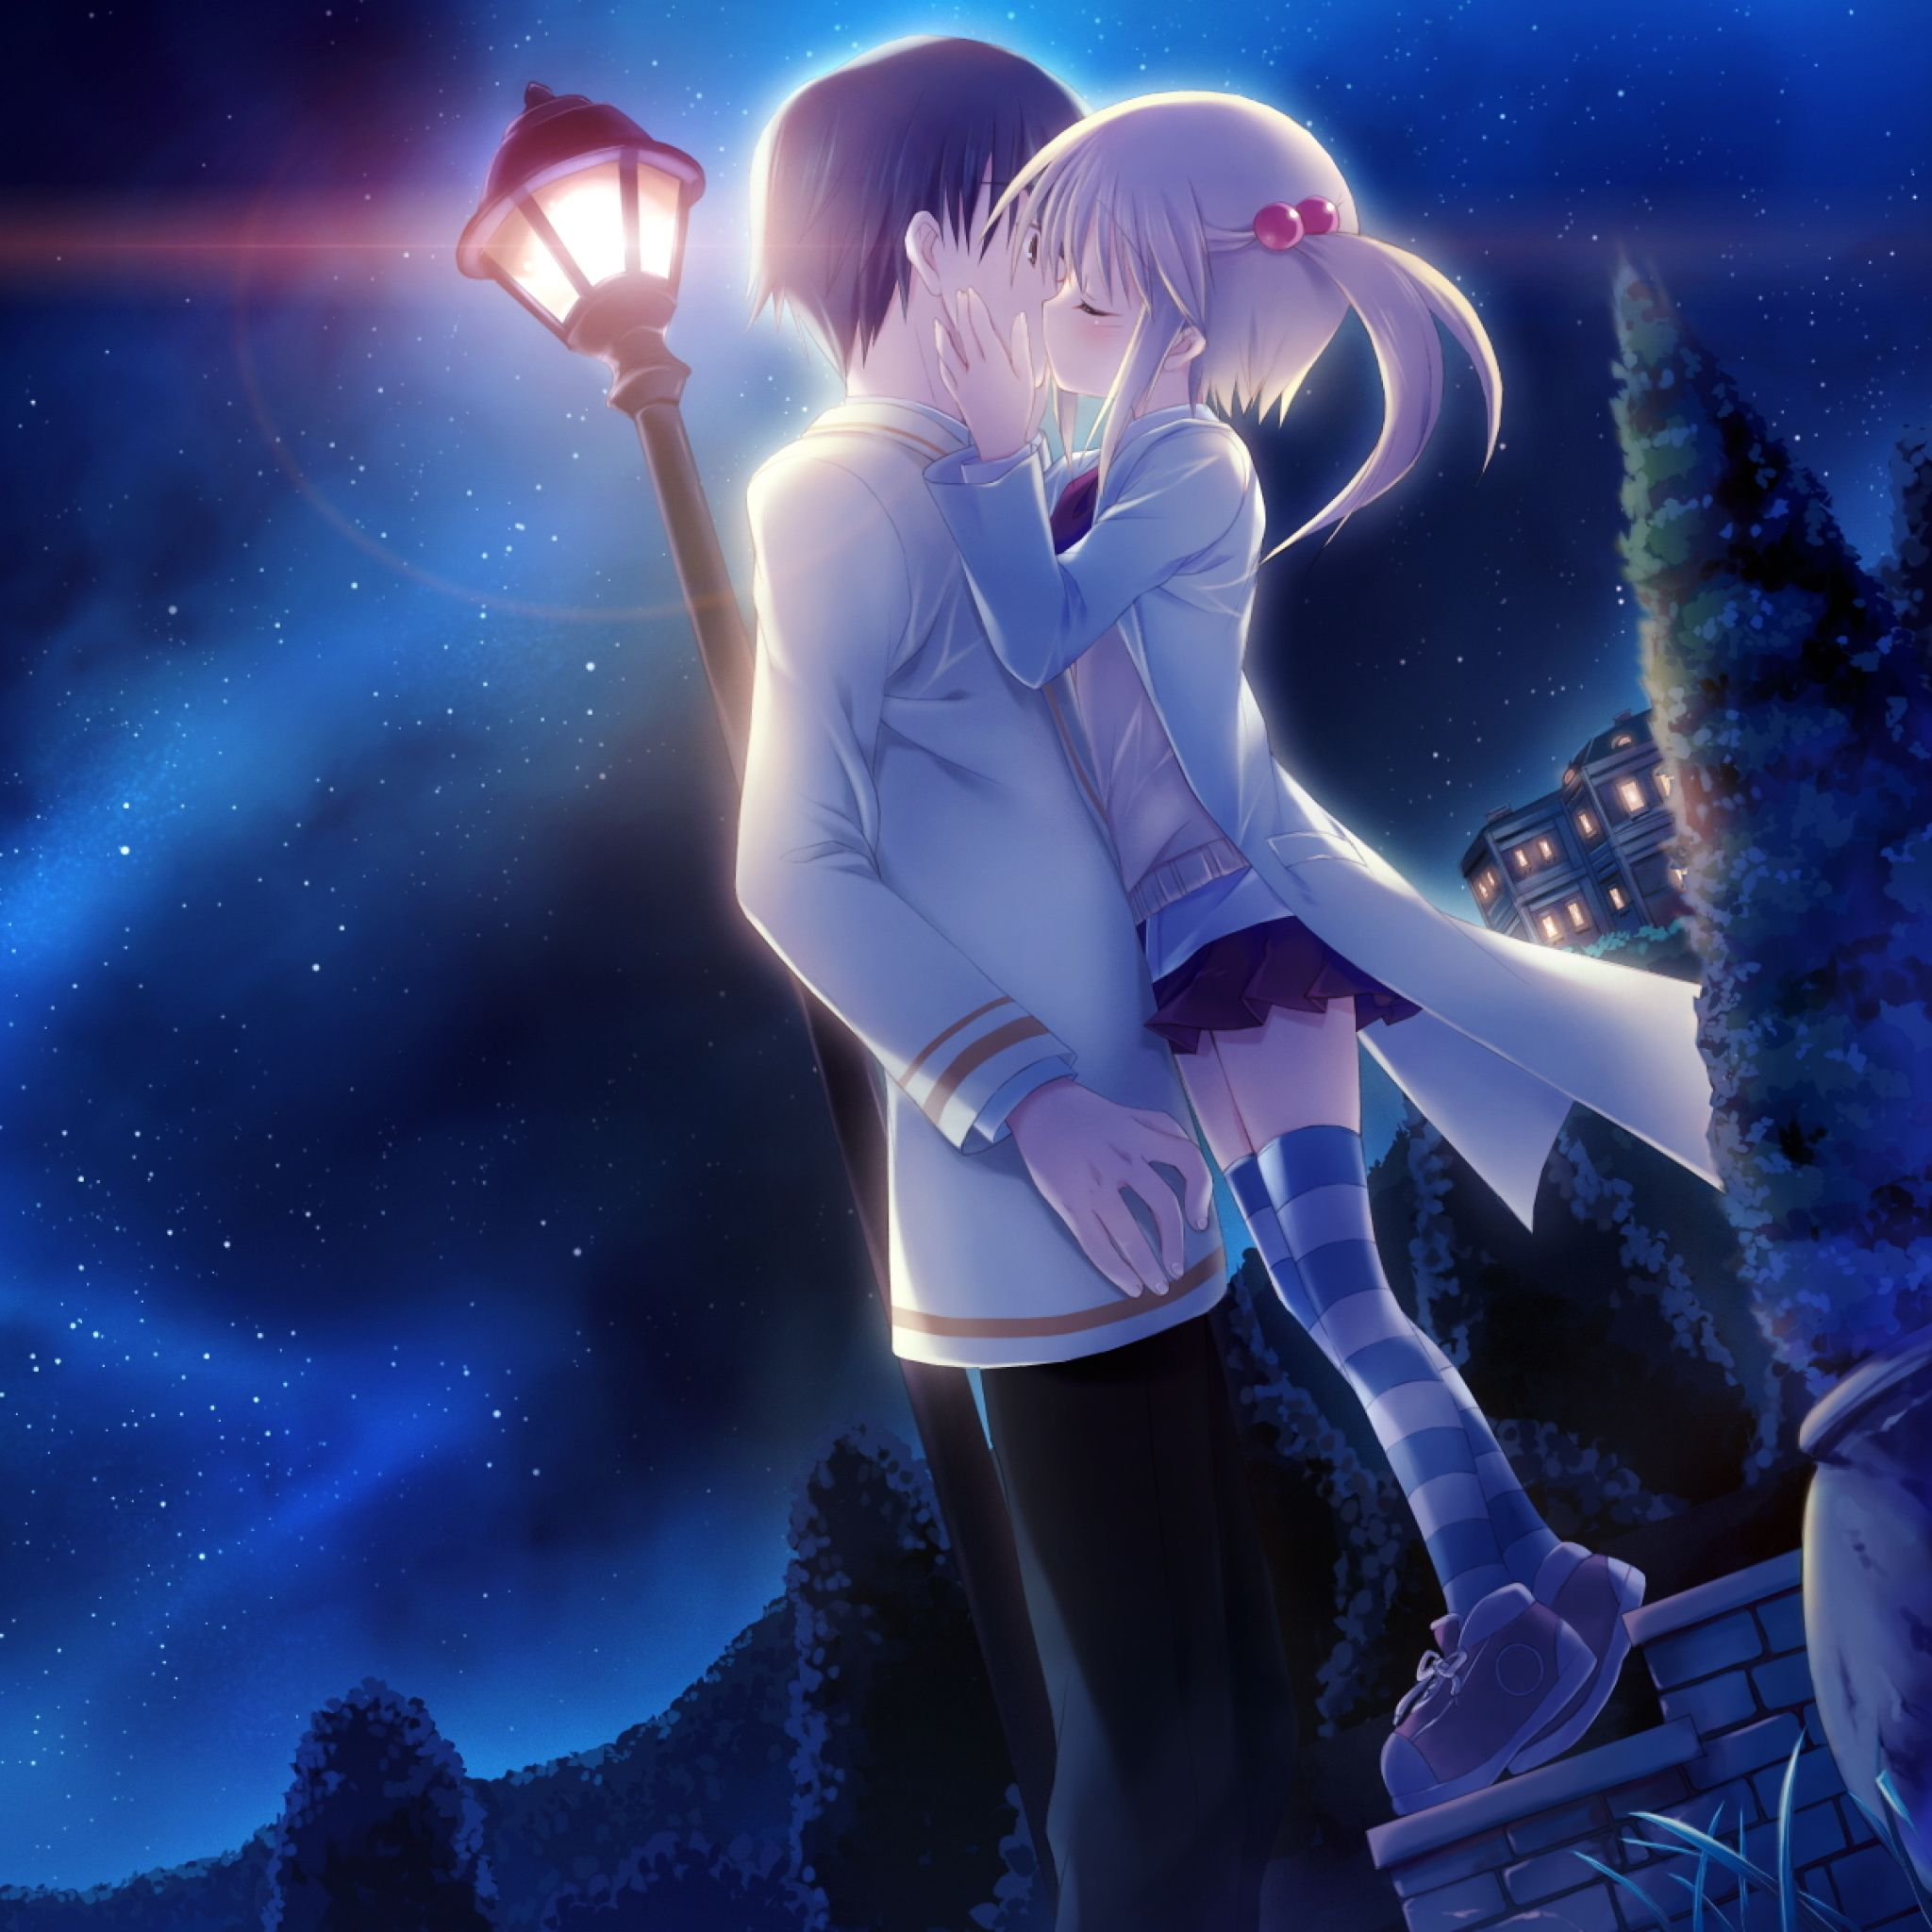 Celestial Night Tap To See More Cute Anime Love Wallpapers